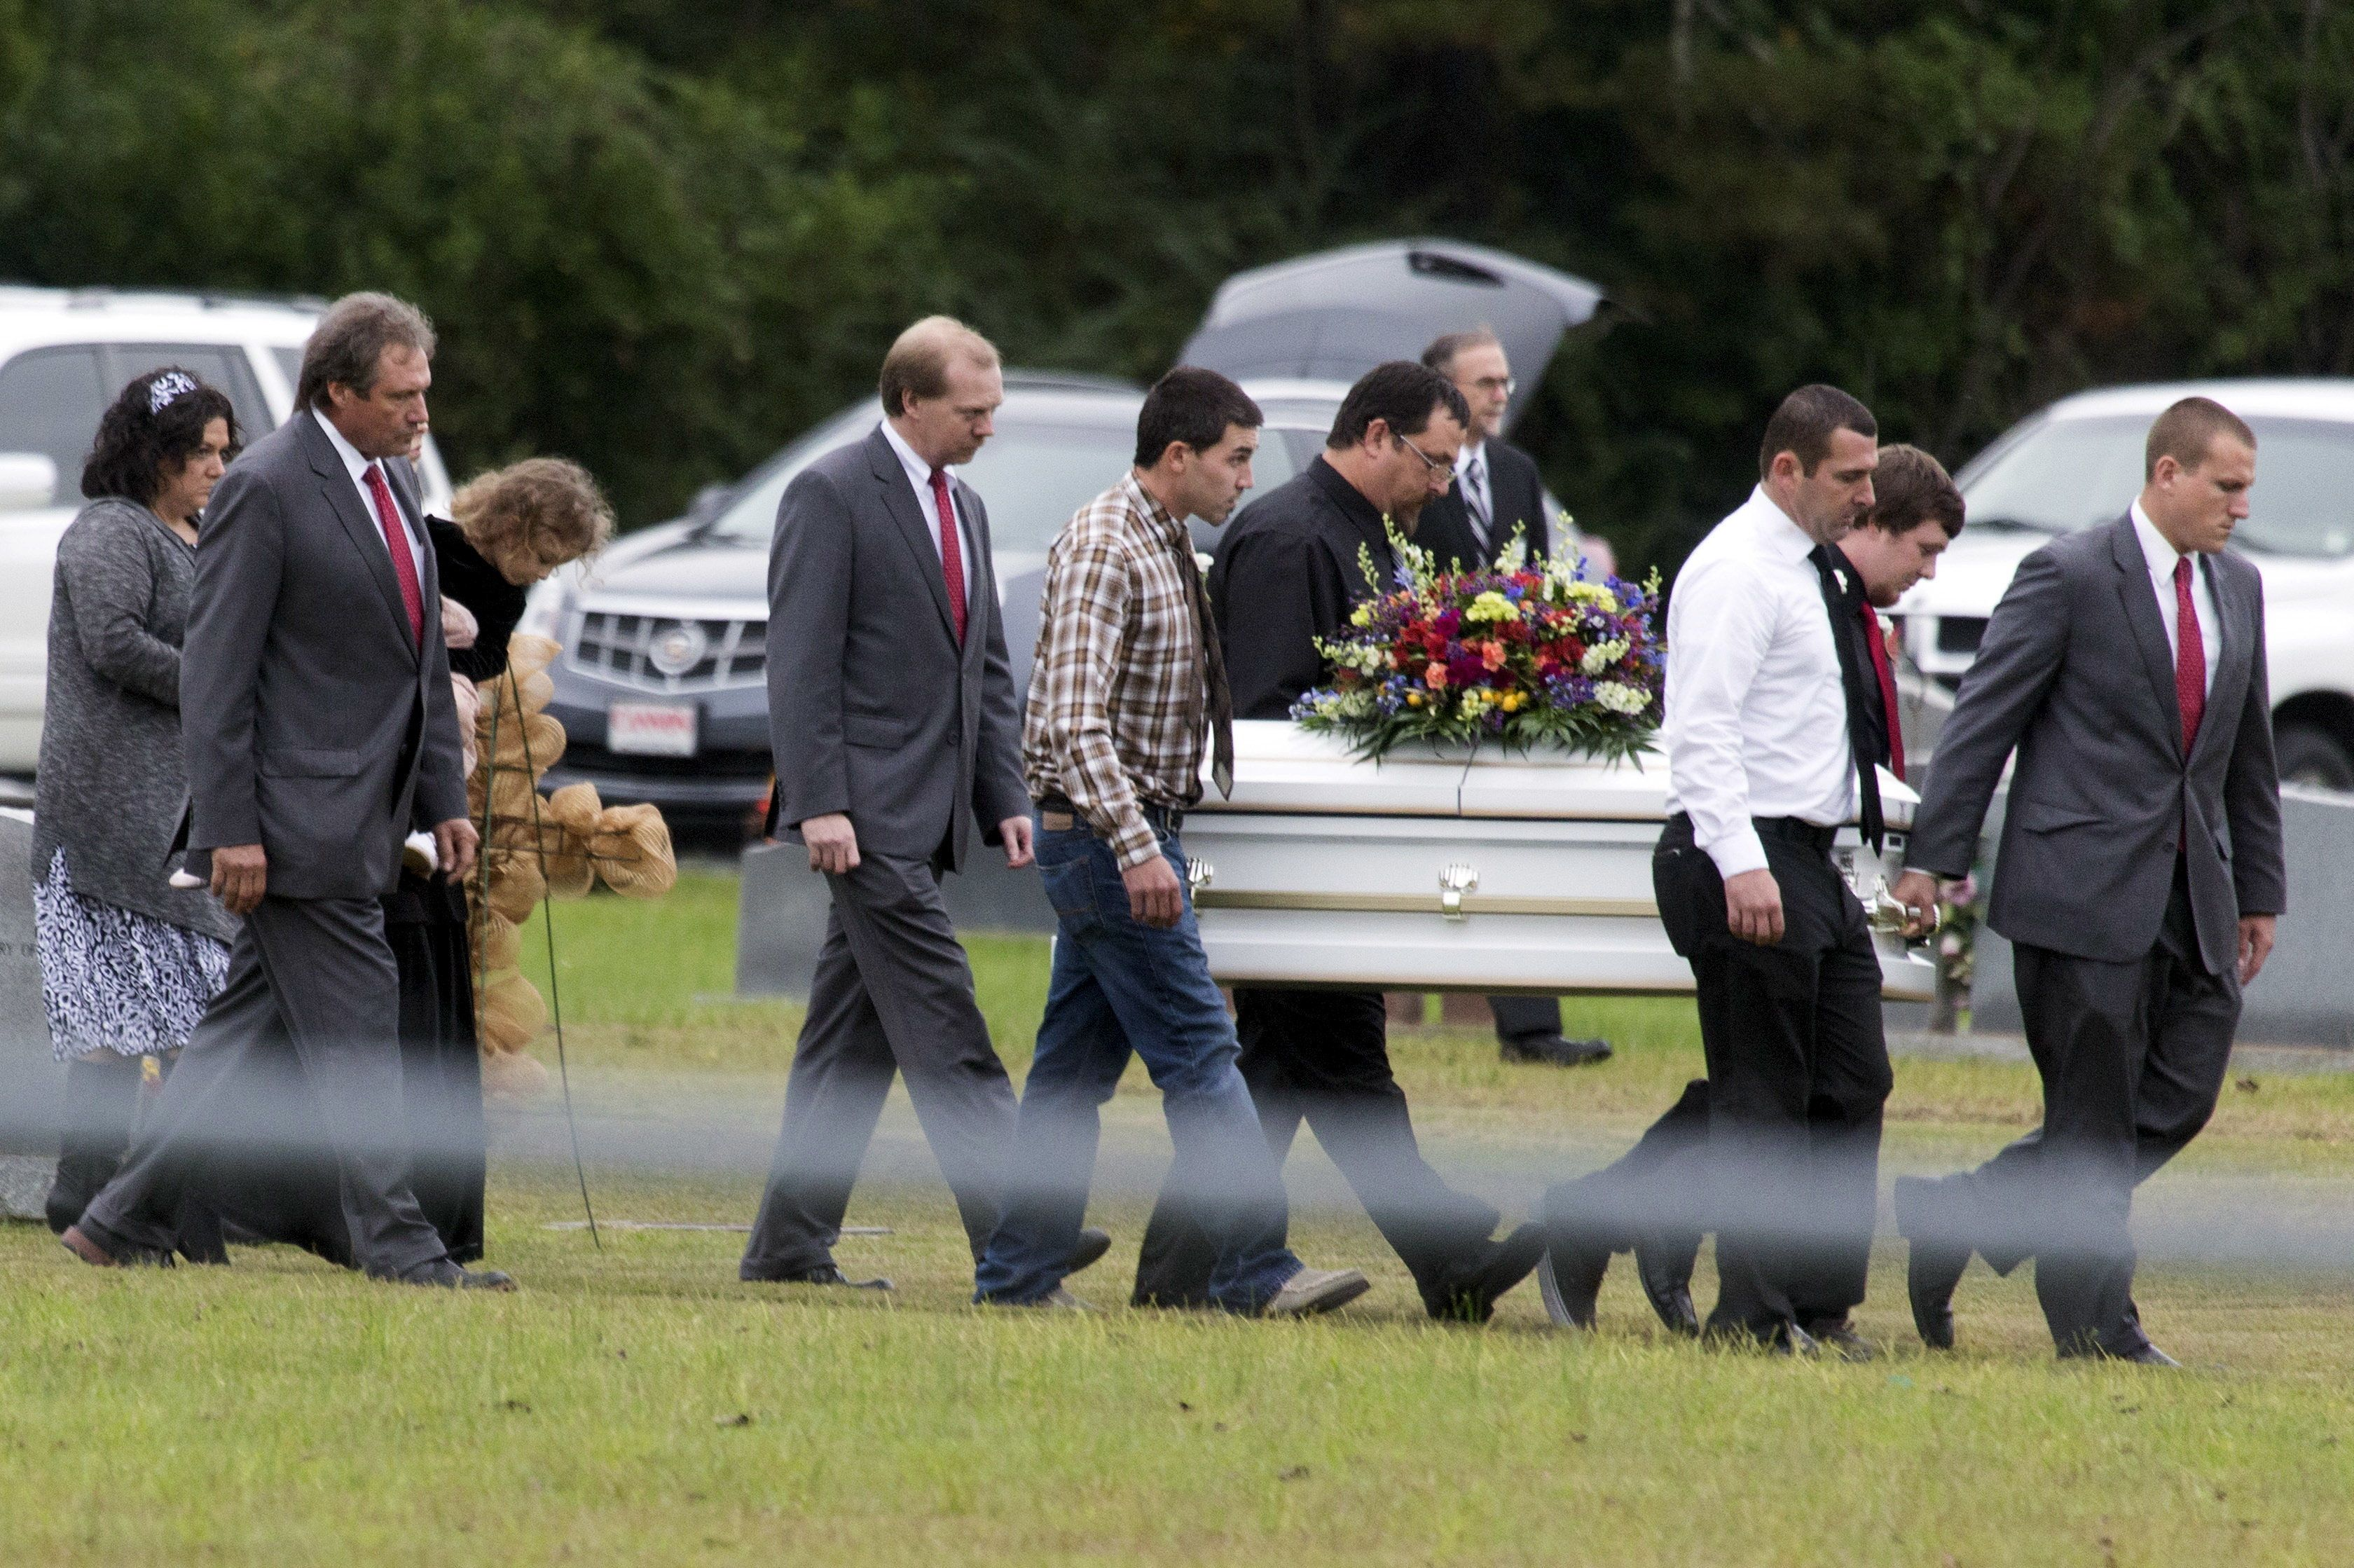 Pallbearers carry the casket of six-year old Jeremy Mardis at a cemetery in Beaumont, Mississippi, November 9, 2015.